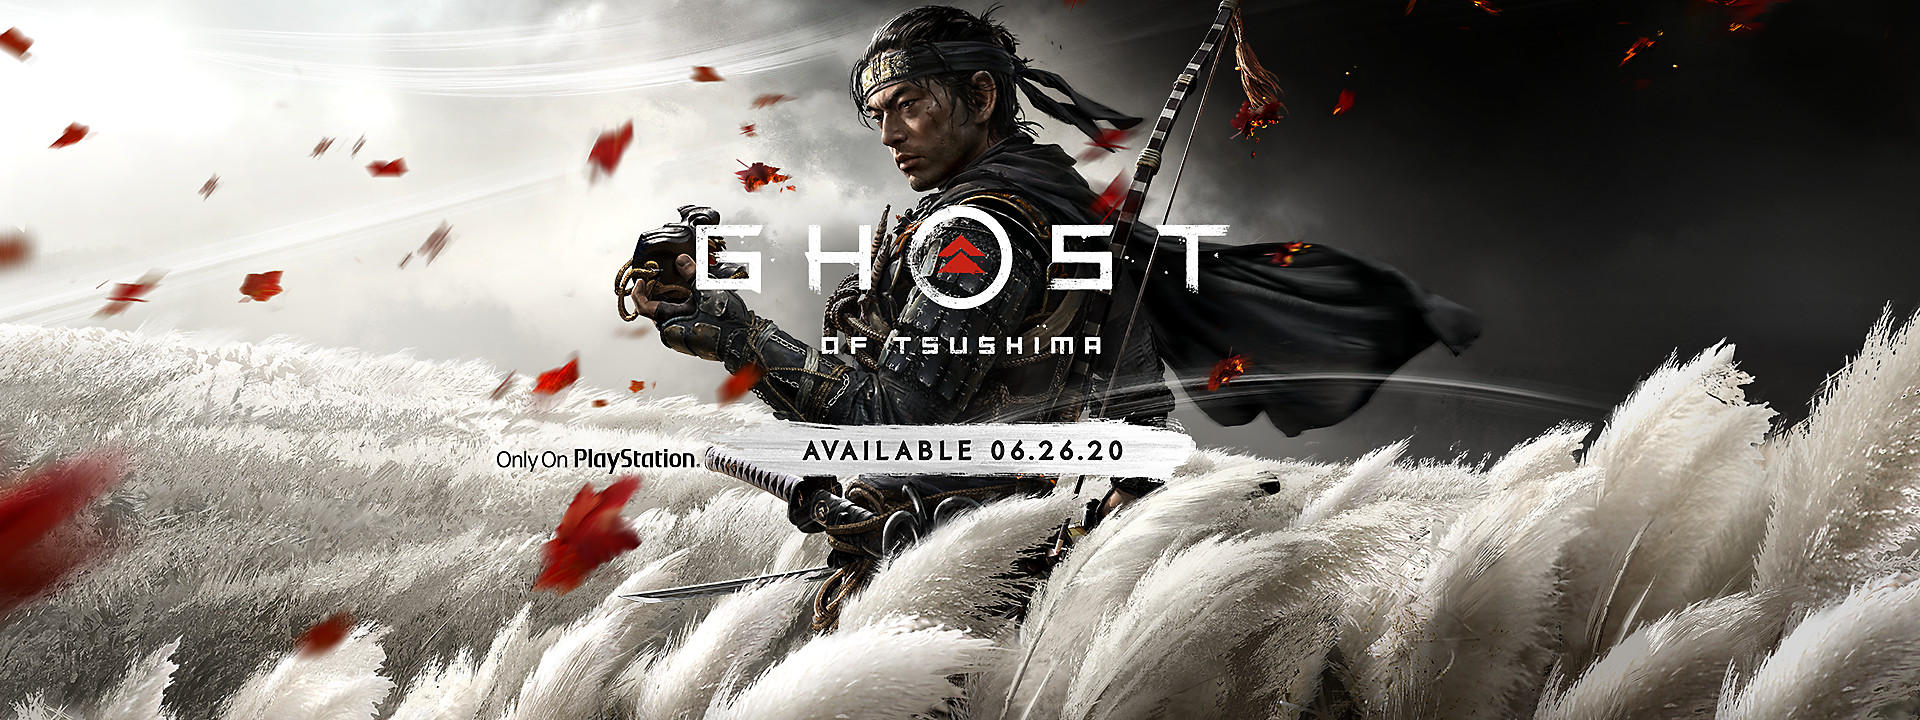 Ghost of Tsushima - Available June 26, 2020